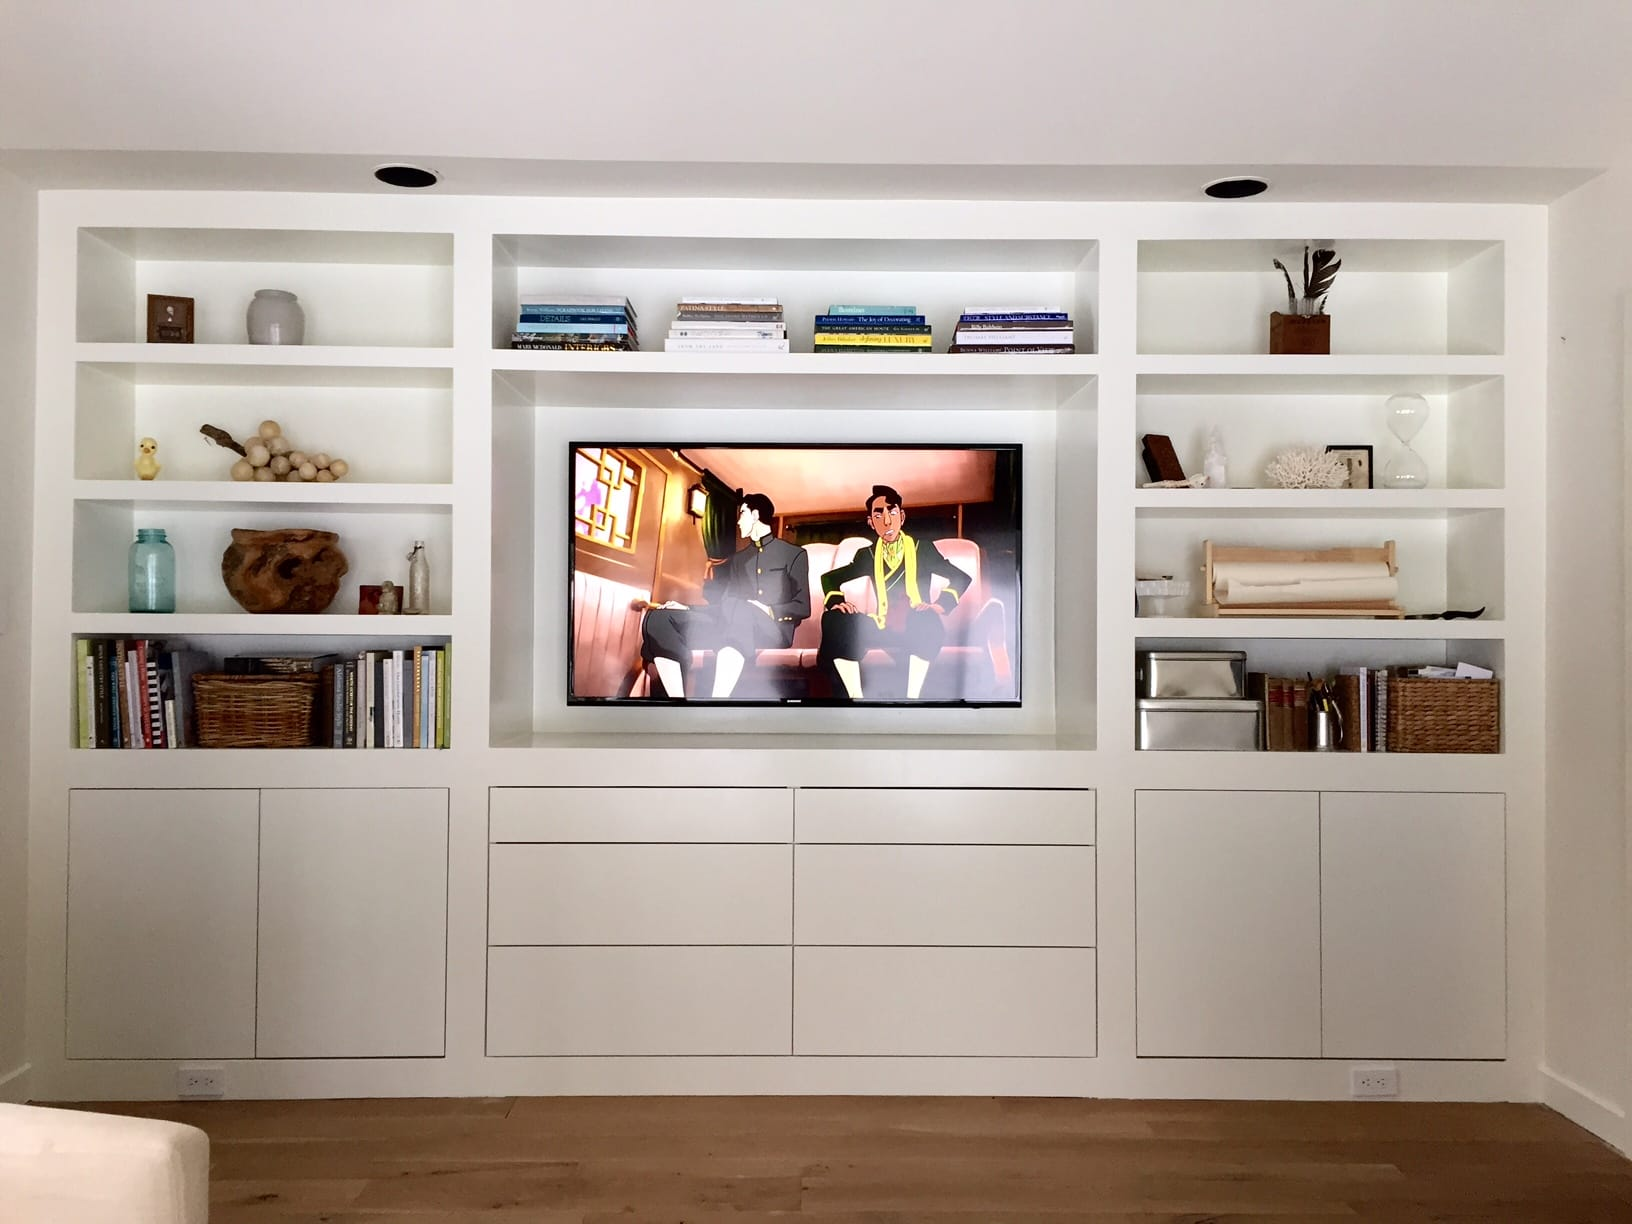 The Room Of Requirement Built-ins